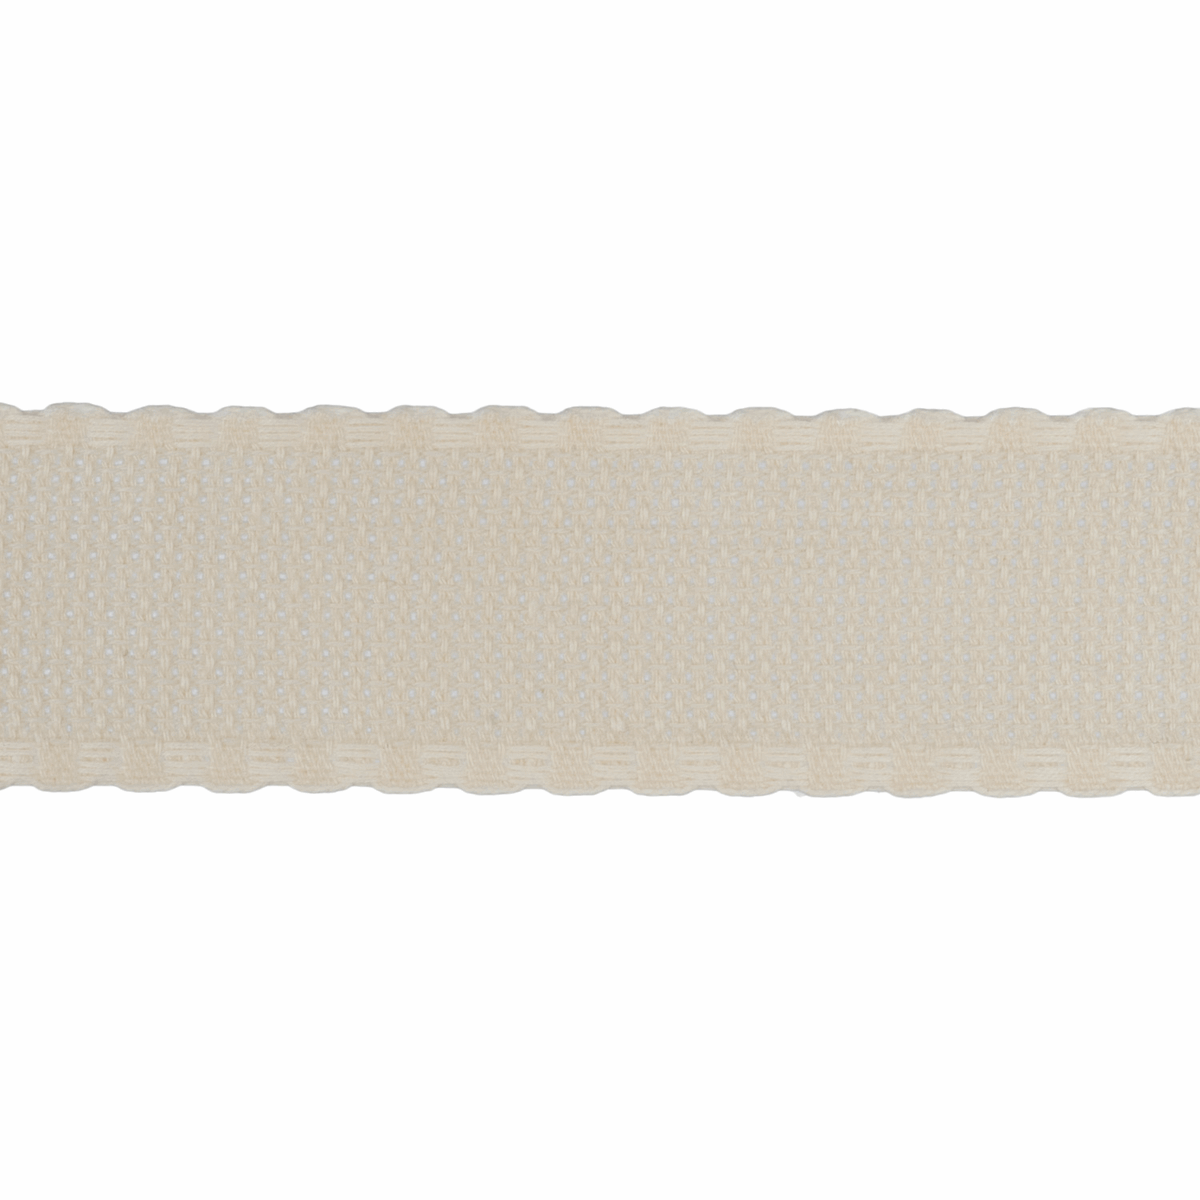 Picture of Needlecraft Fabric: Aida Band: 16 Count: 8m x 70mm: Cream